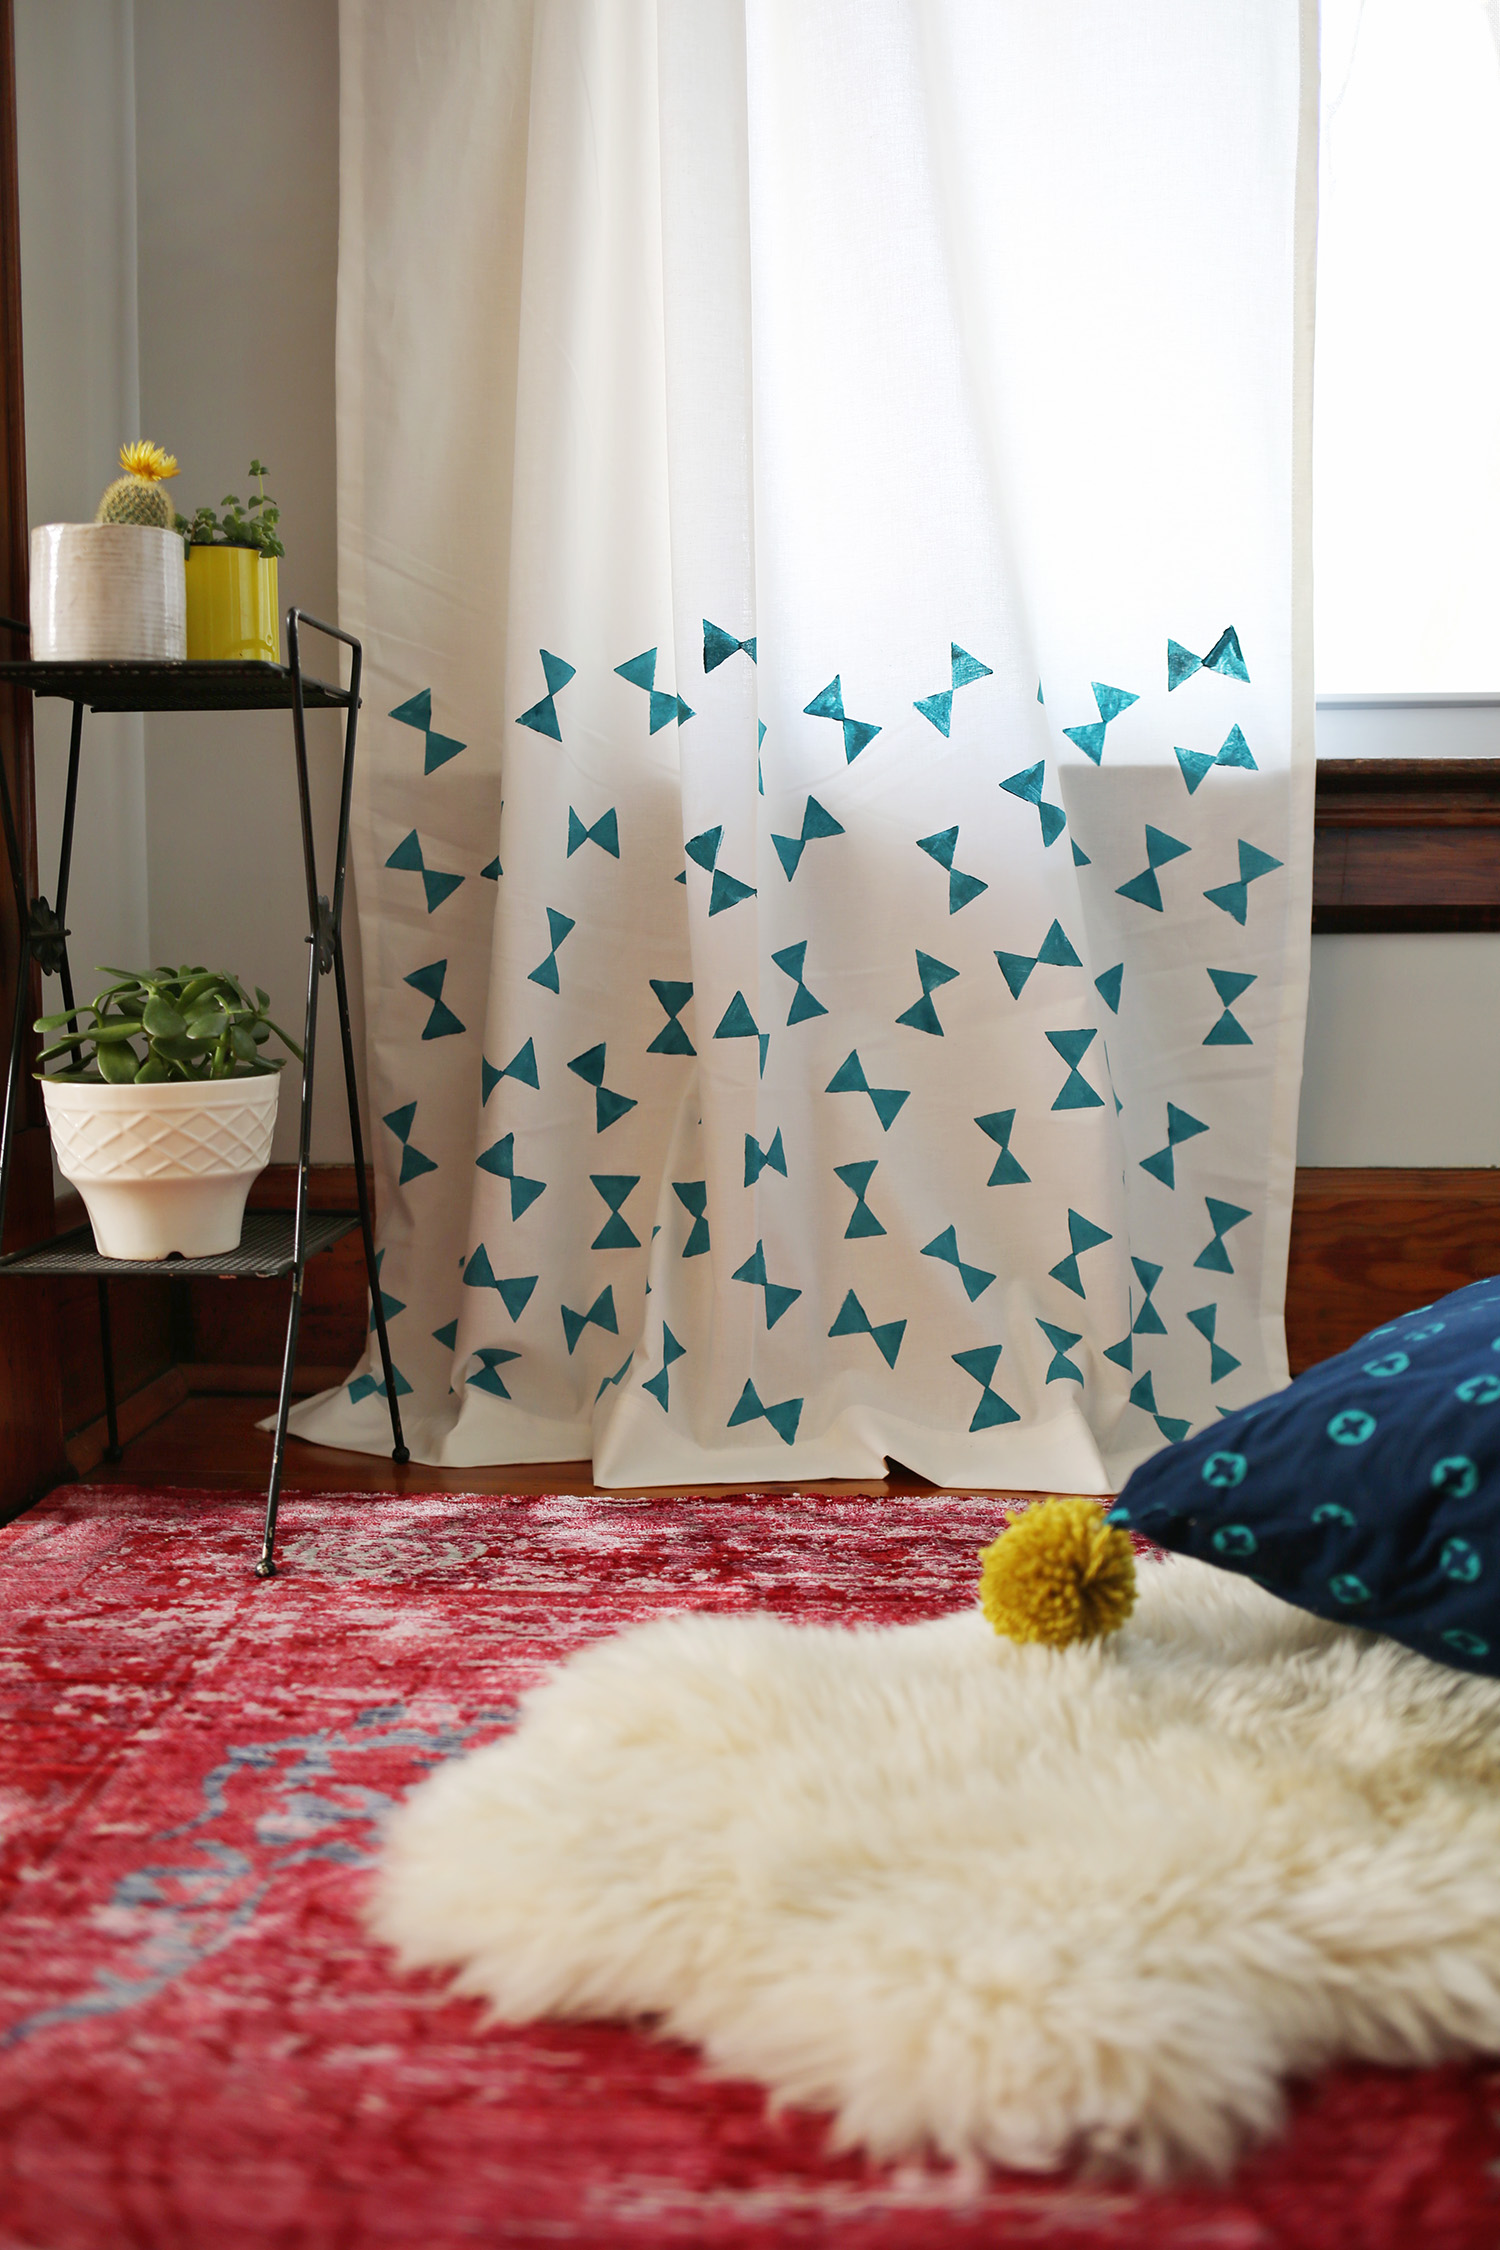 Use a potato stamp to add a sweet bowtie pattern to a simple curtain panel. Get the full details over at www.aBeautifulMess.com